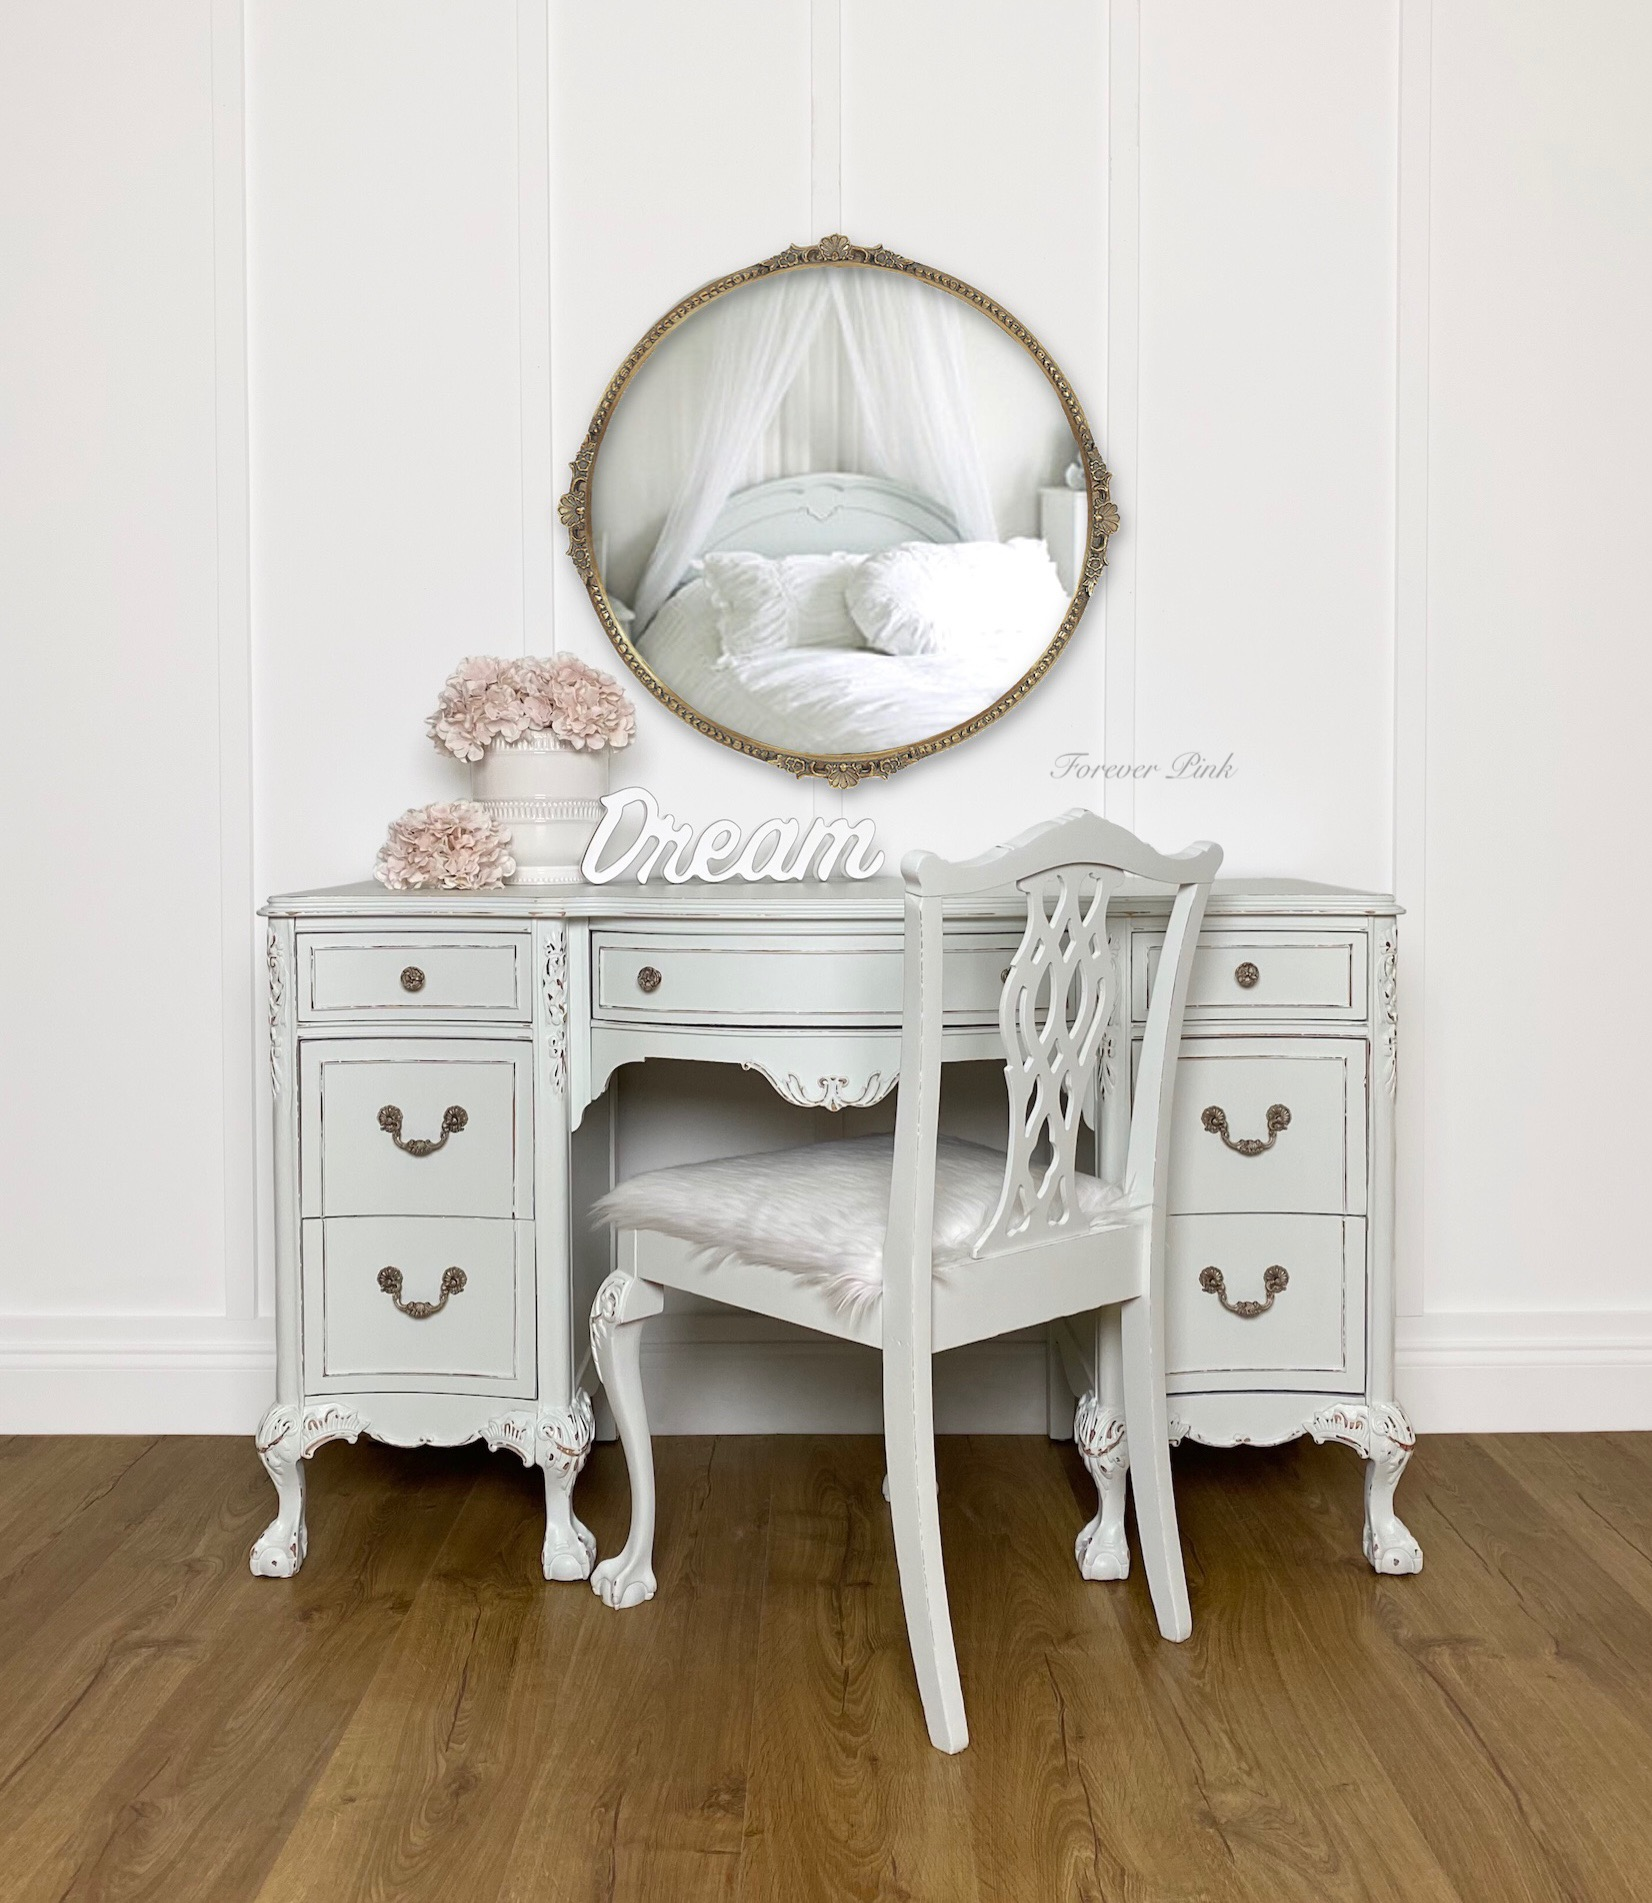 French Provincial Desk and Upholstered Chair in Lazy Linen